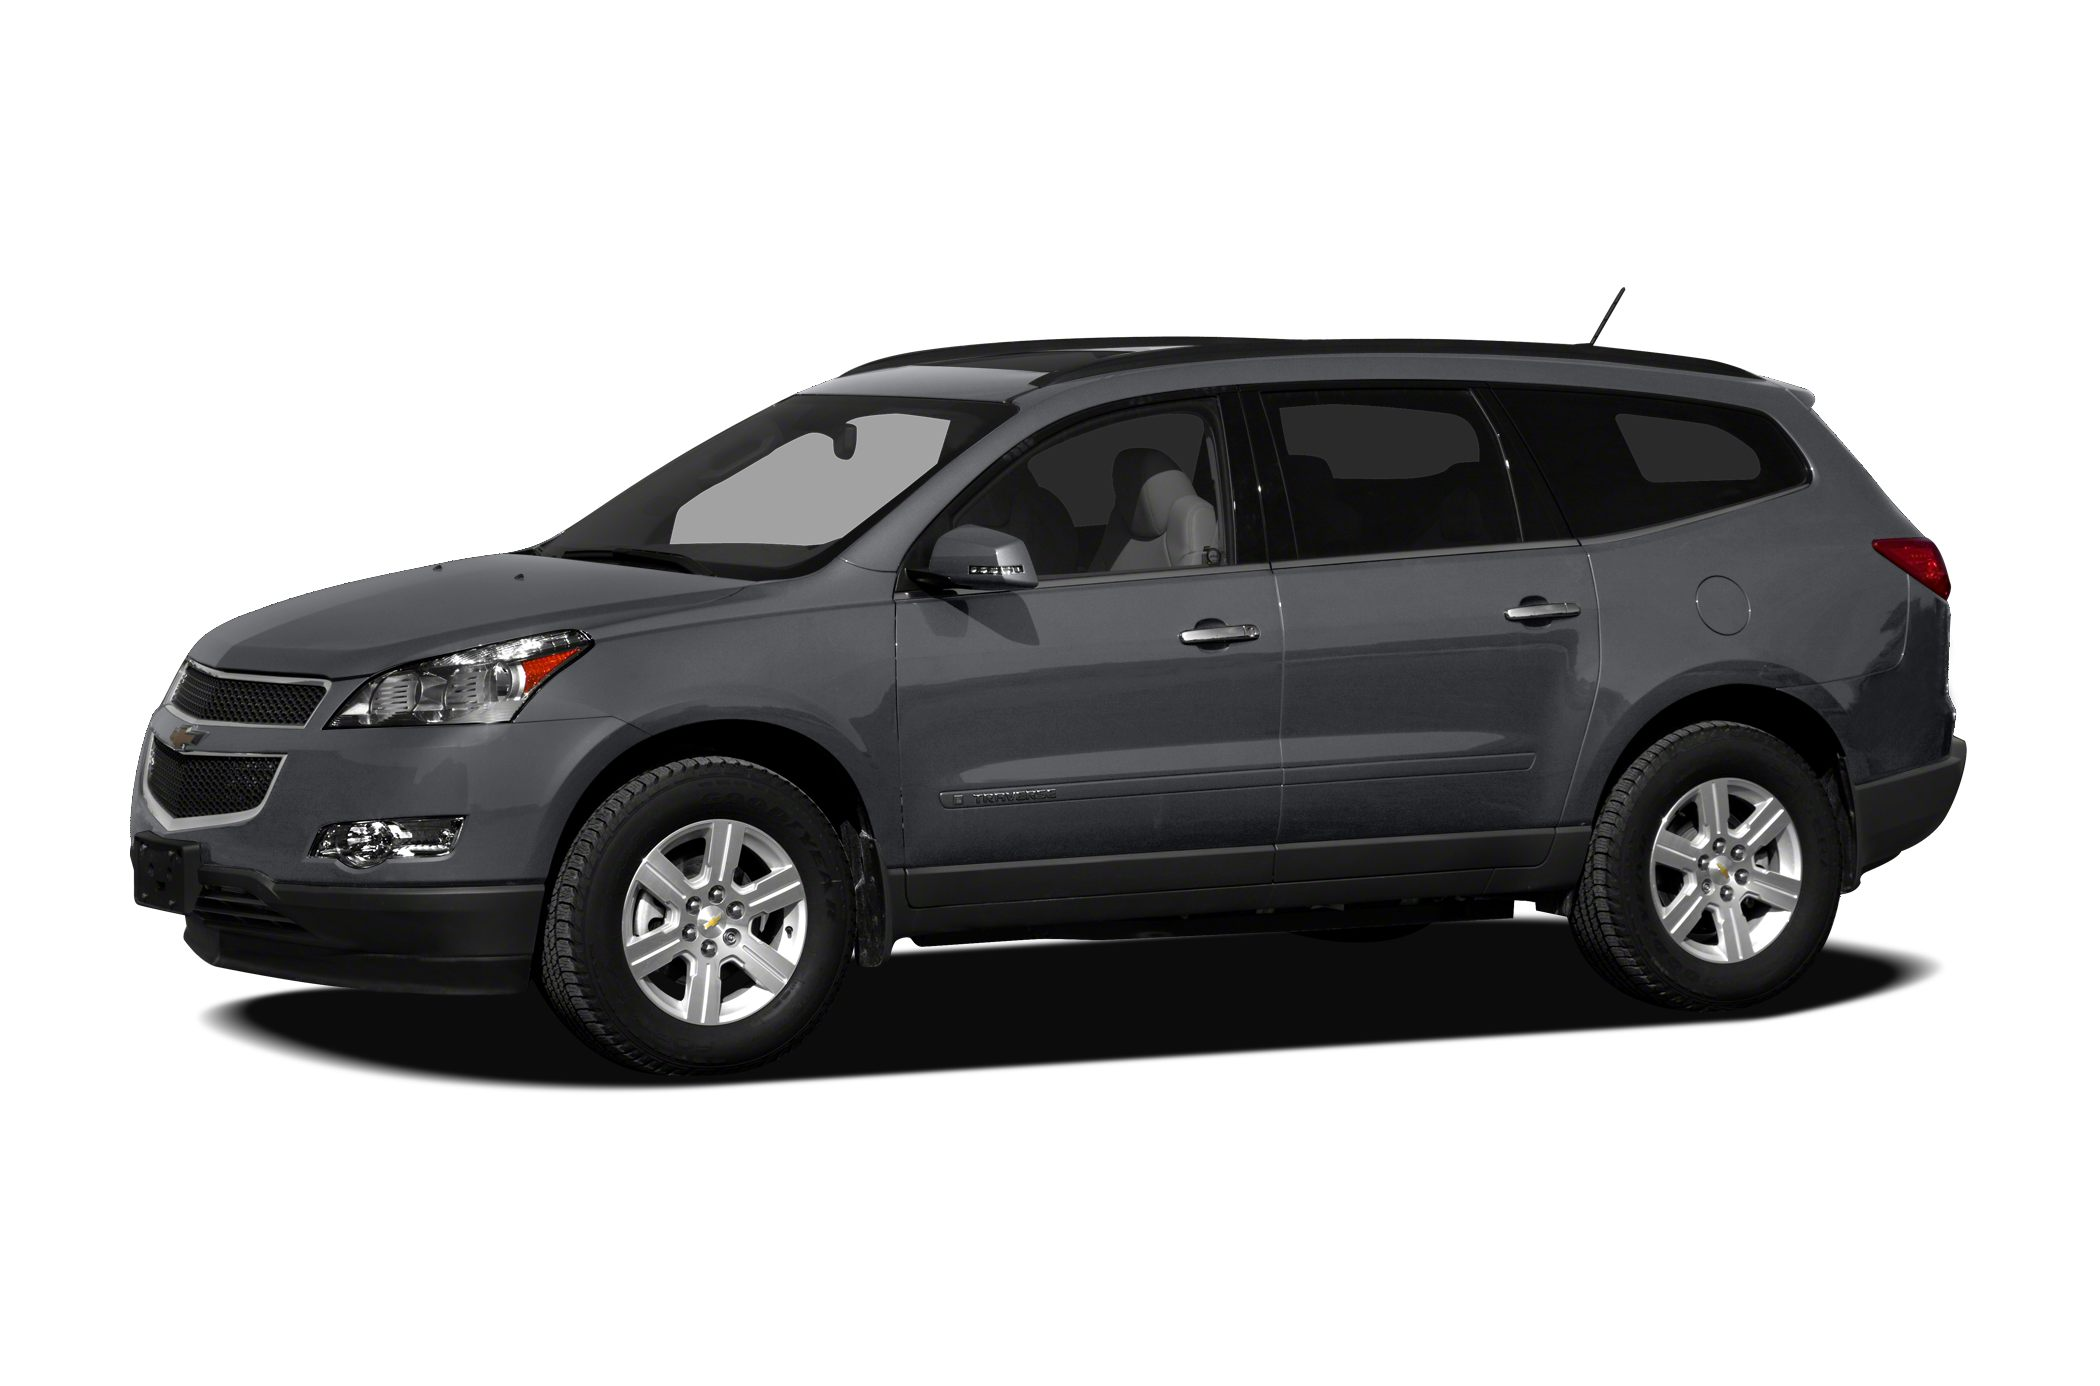 2011 Chevrolet Traverse LTZ SUV for sale in Lake Charles for $20,995 with 85,850 miles